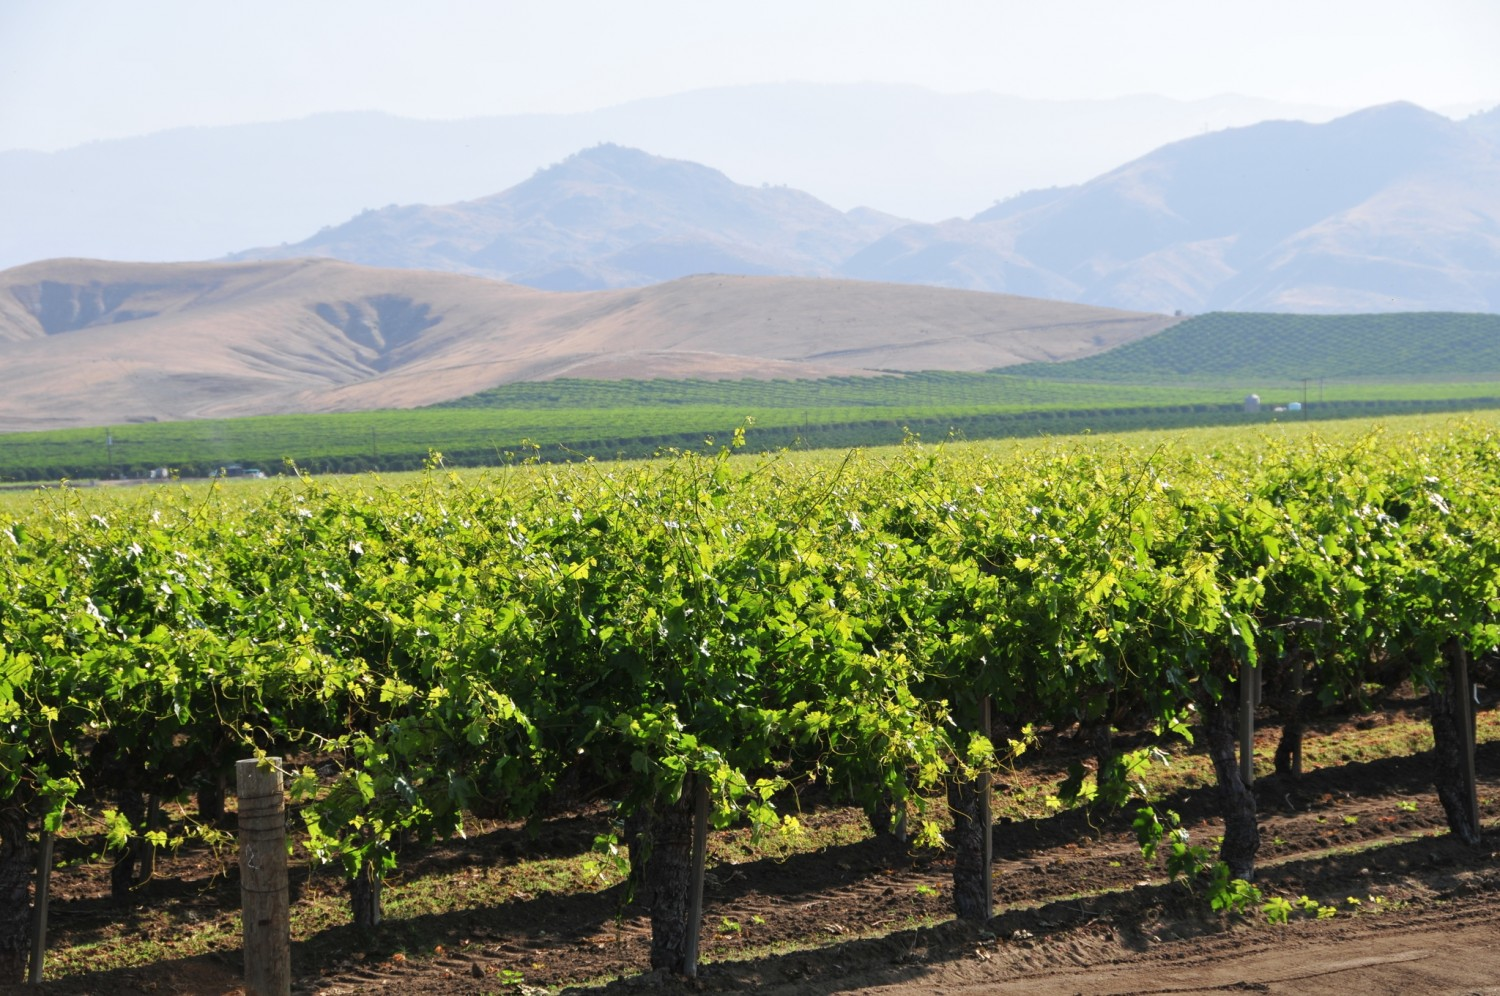 Sierra Foothills - Vineyards